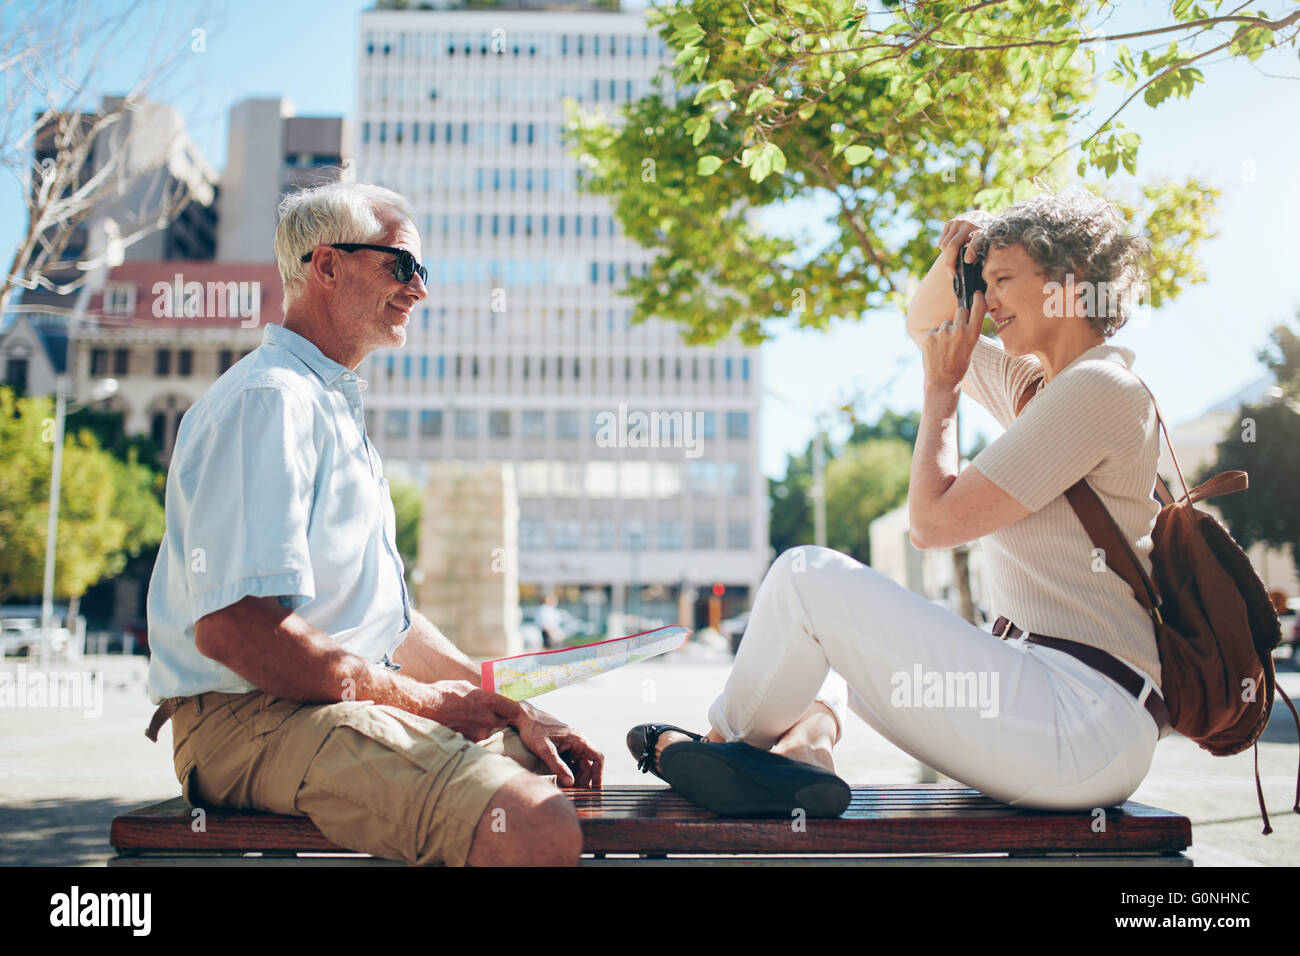 Side view of senior man sitting outdoors on a bench and woman taking his pictures with digital camera. Senior couple - Stock Image